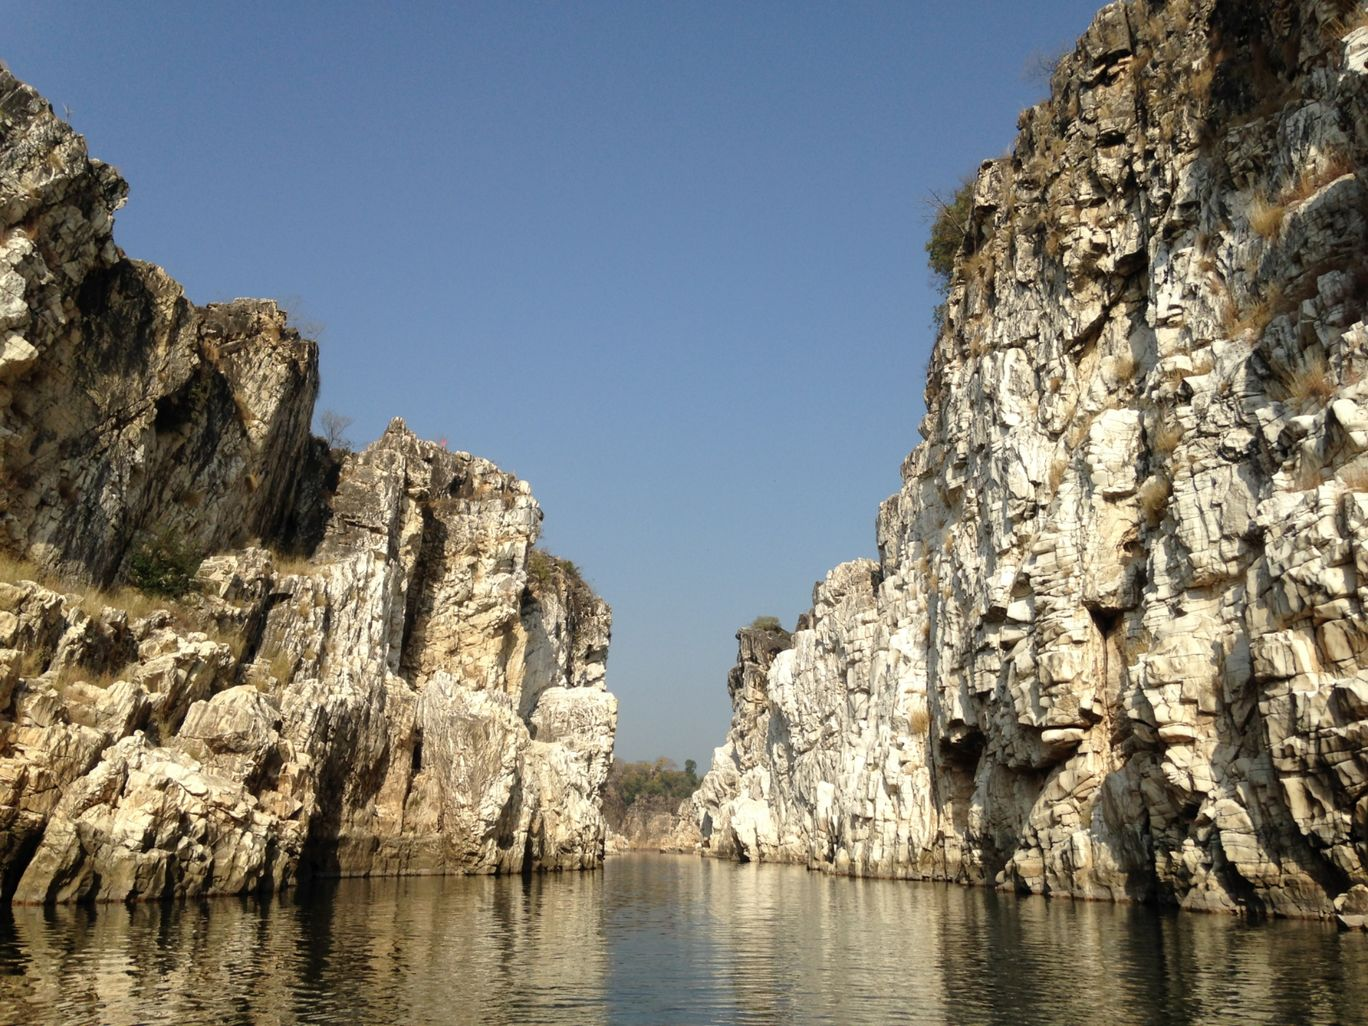 Photo of Marble Rocks By Saraswat Rit